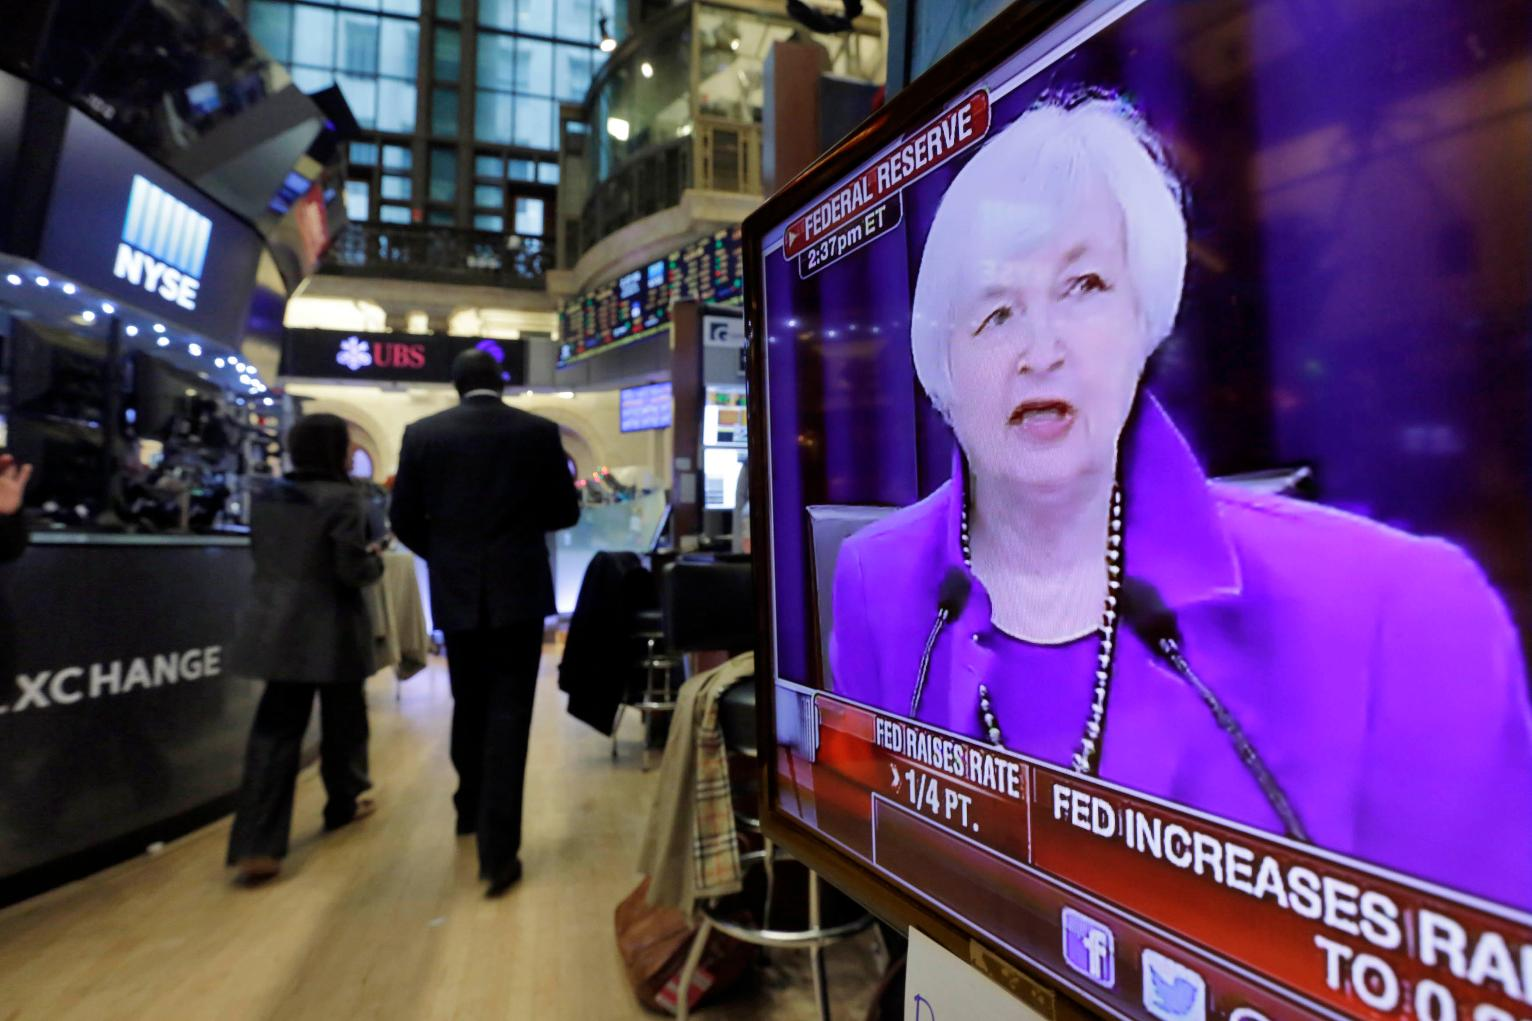 study most moonlight to make ends meet us news federal reserve chair janet yellen s washington news conference is shown on a television screen on the